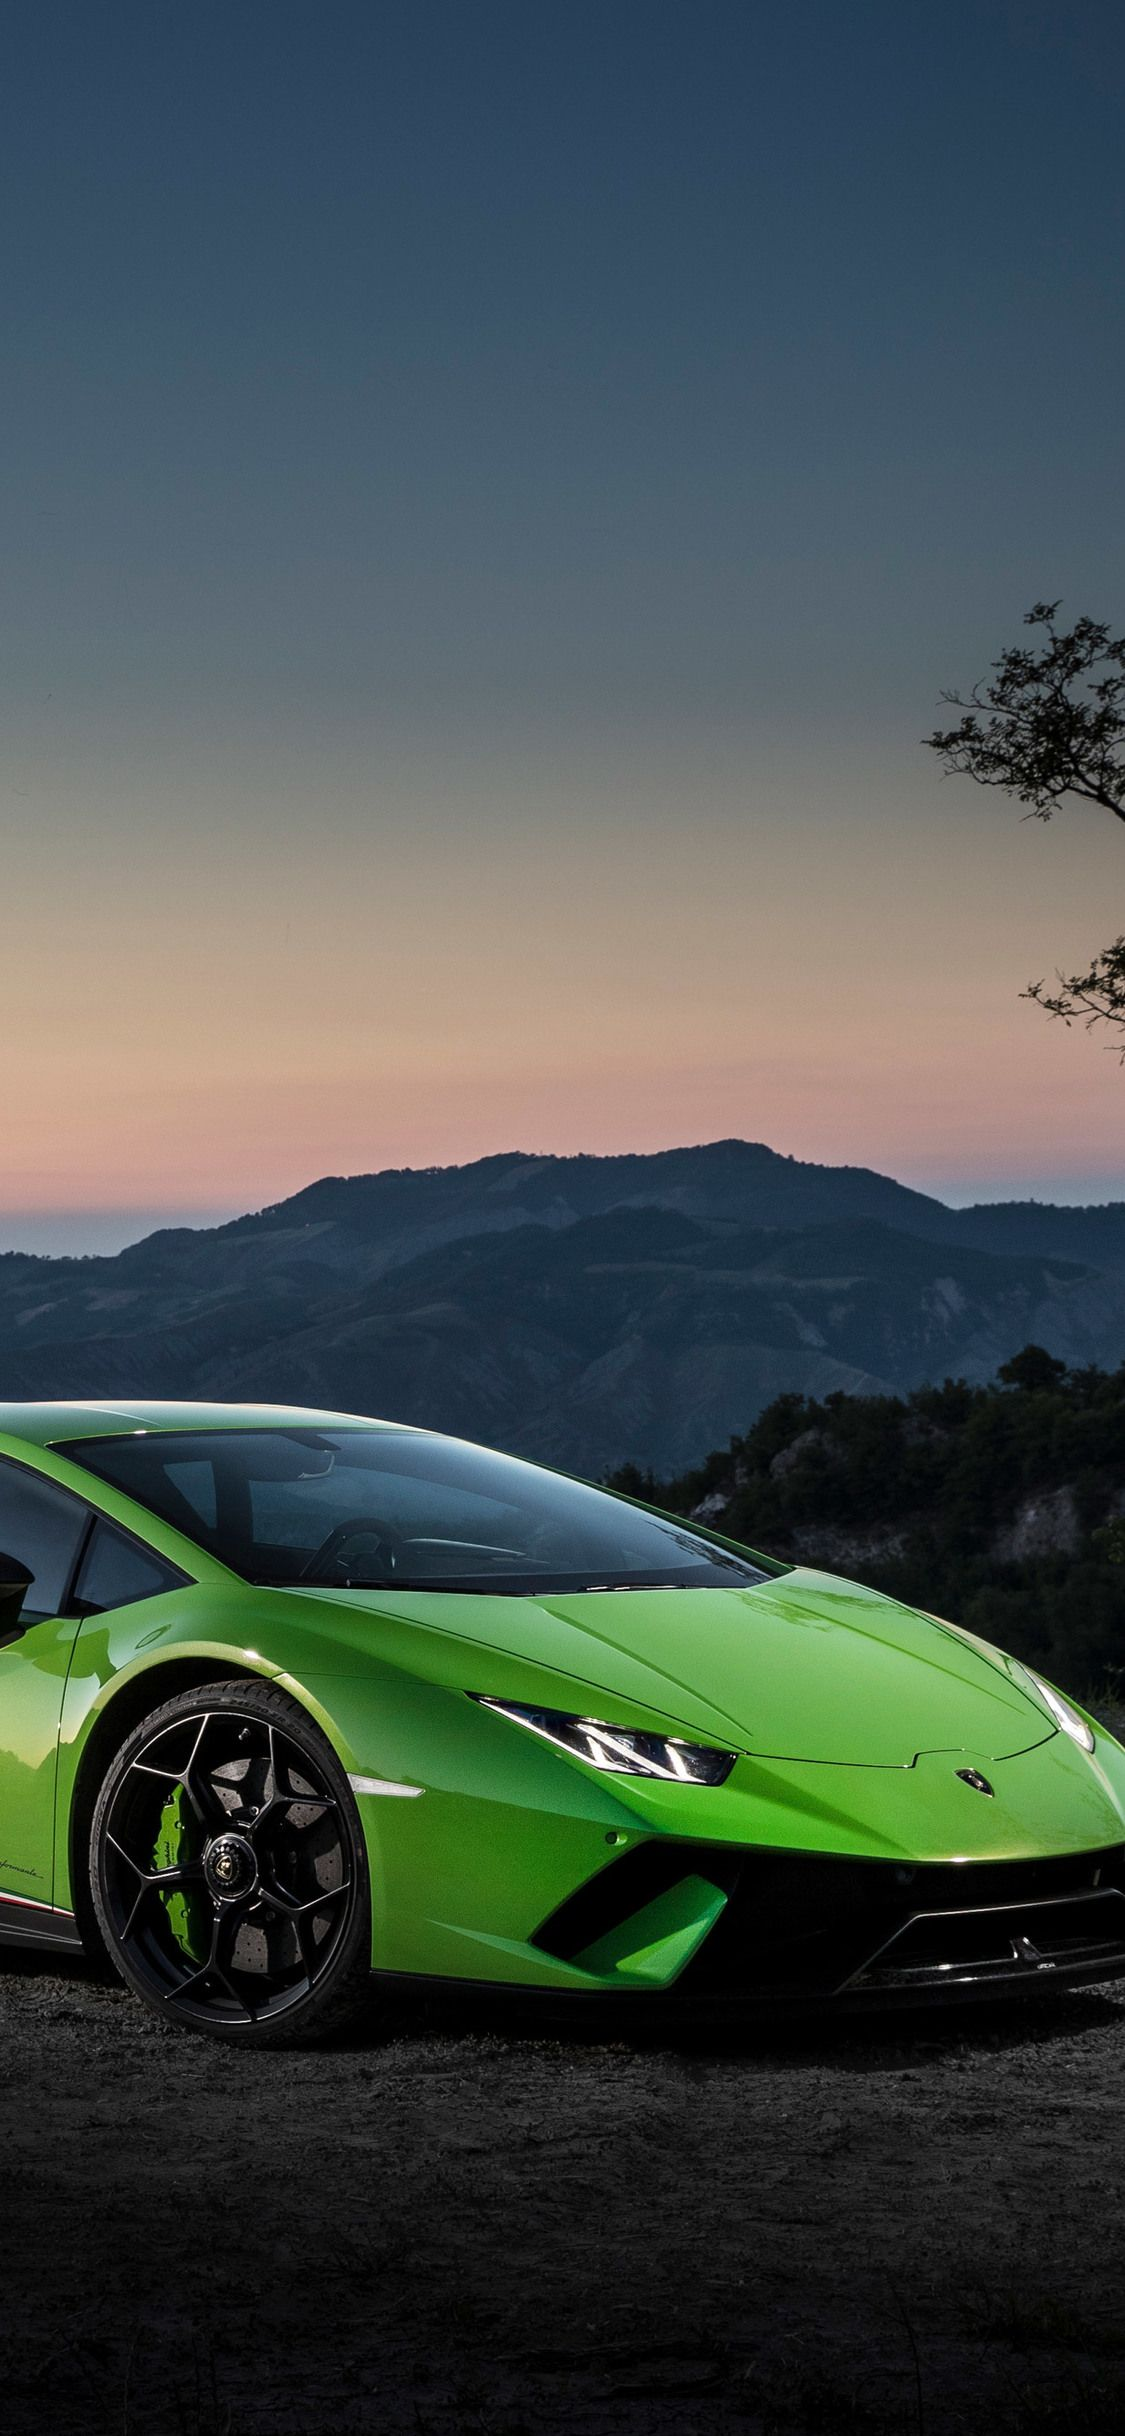 Green Lamborghini iPhone Wallpapers - Top Free Green Lamborghini